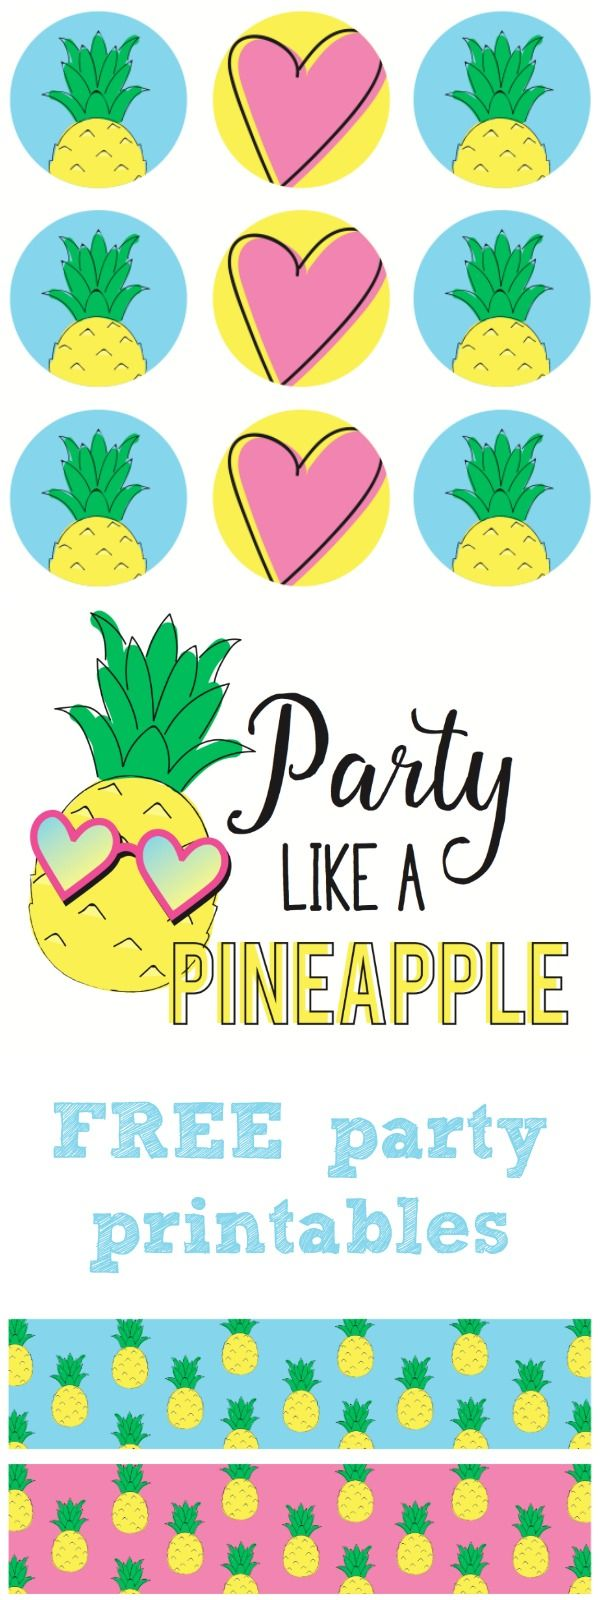 Party like a complete. Clipart pineapple birthday